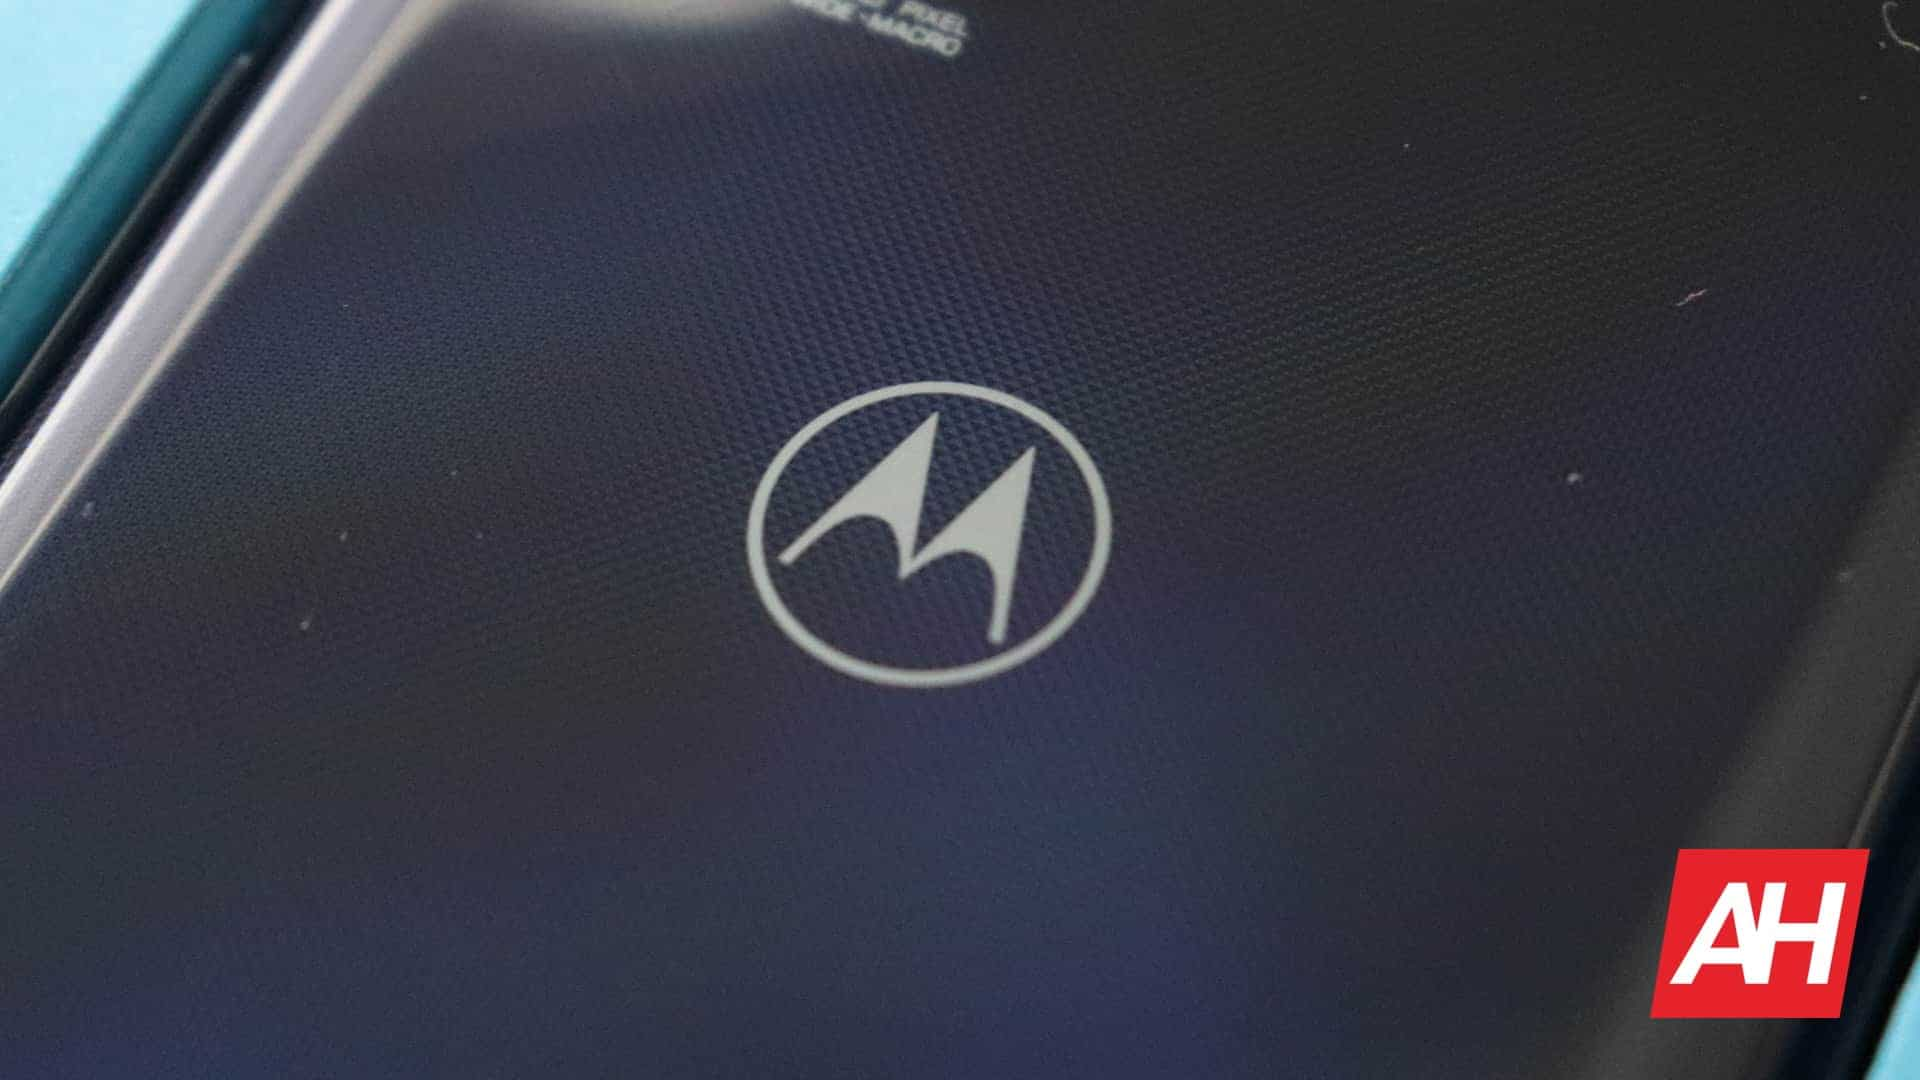 Motorola aims to provide smartphones that charge over the air